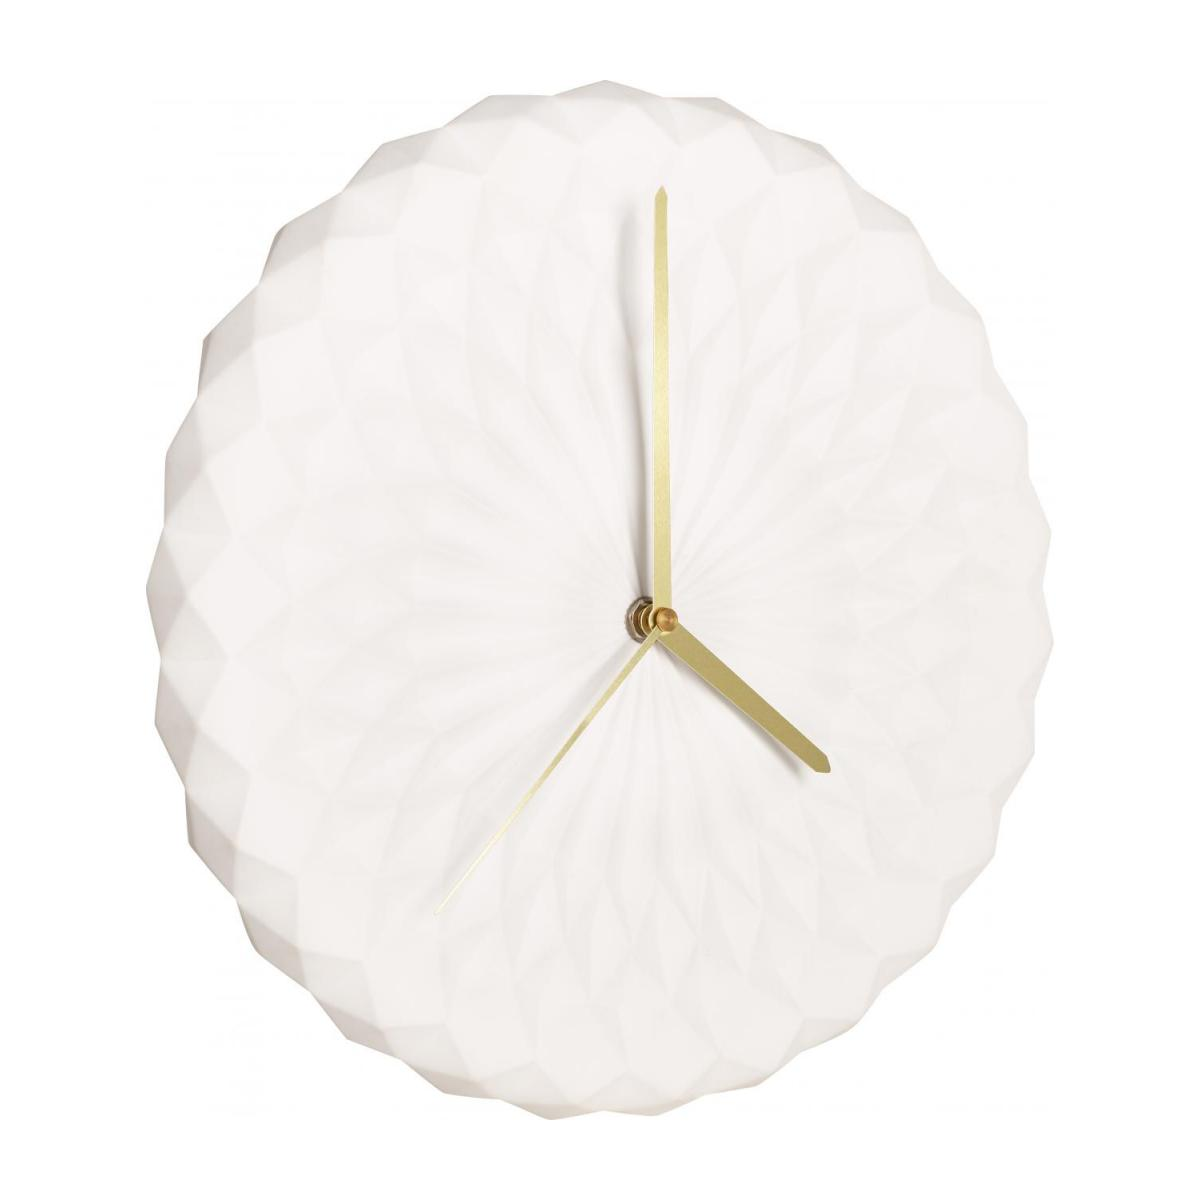 Reloj de pared - Porcelana n°1